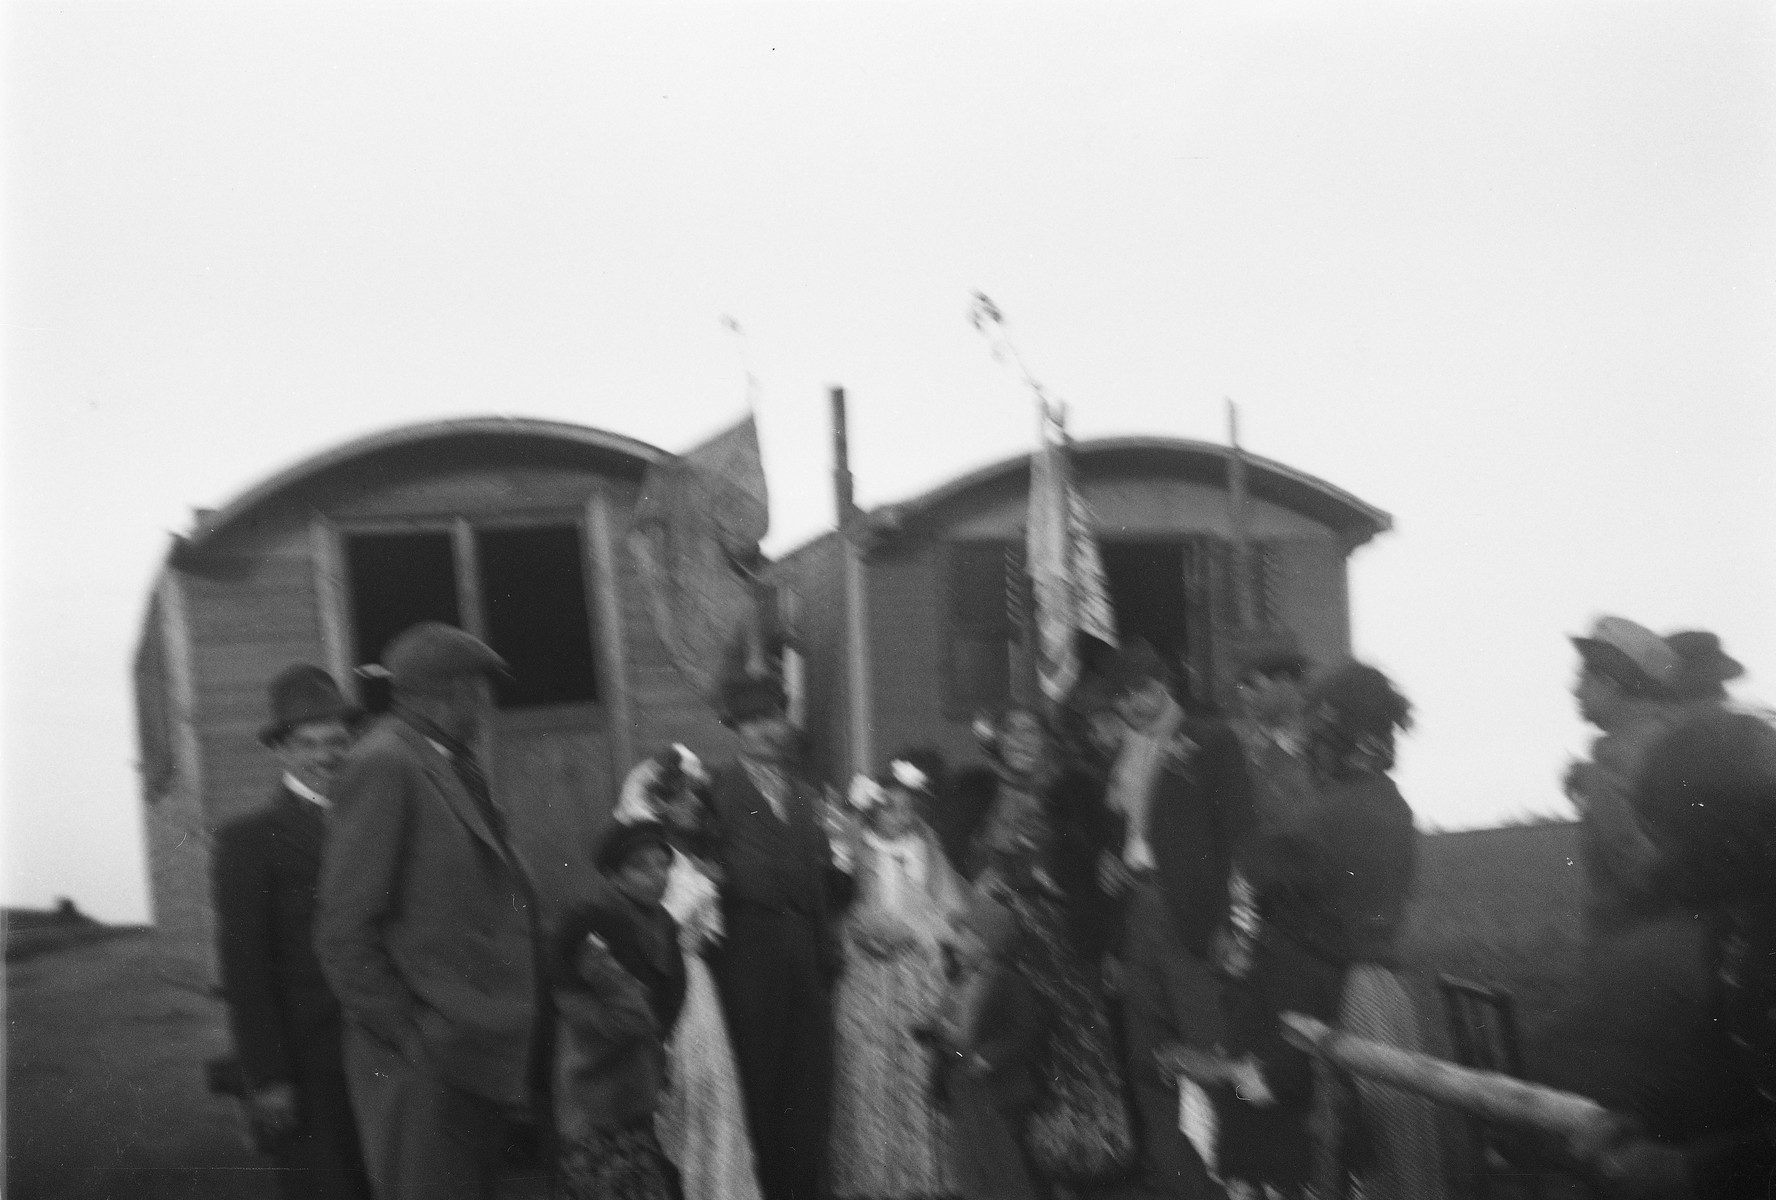 A group of Roma (Gypsies) gather in front of two caravans adorned with banners, possibly for a wedding.